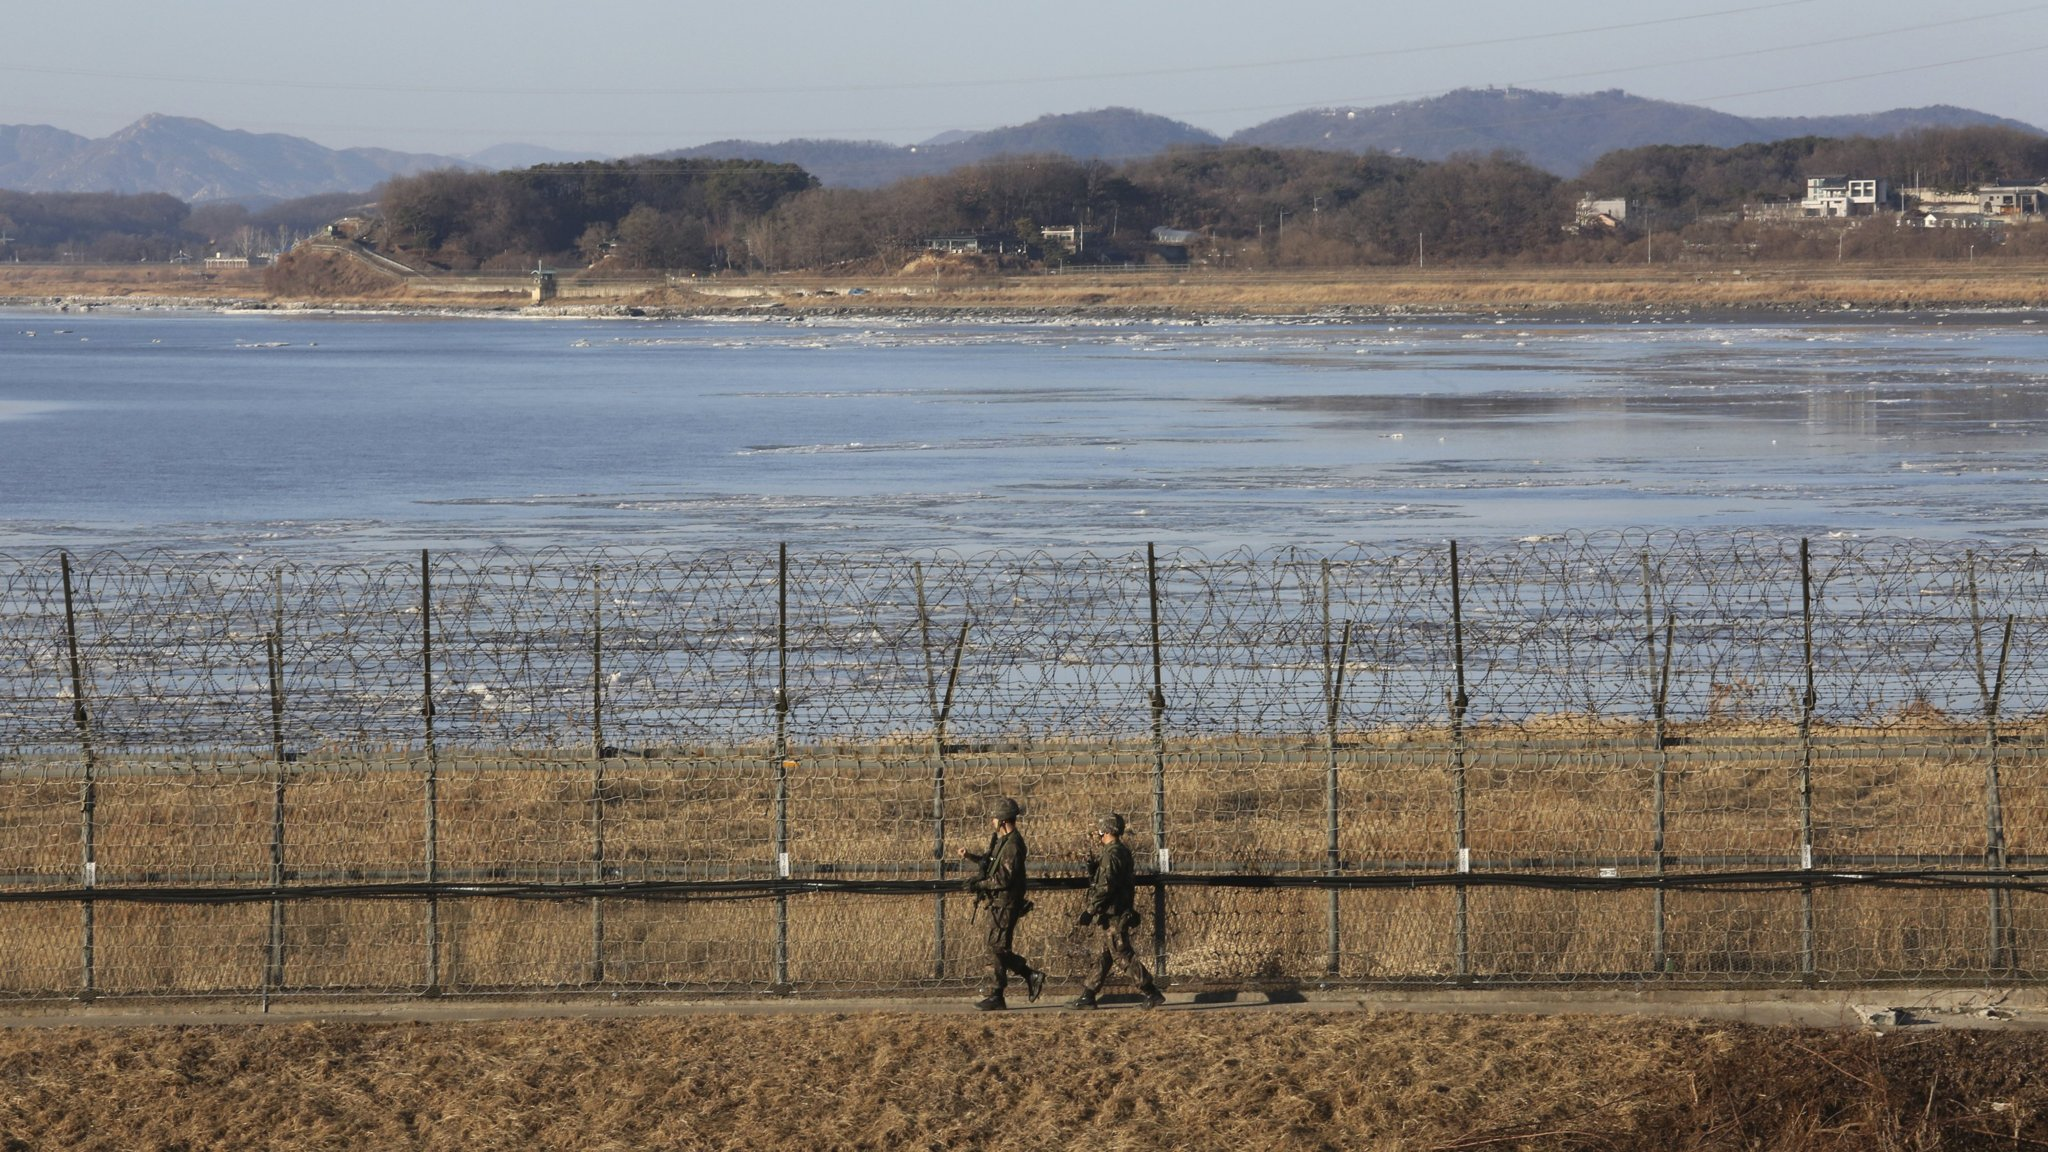 South Korea warms to Pyongyang overtures with offer of talks